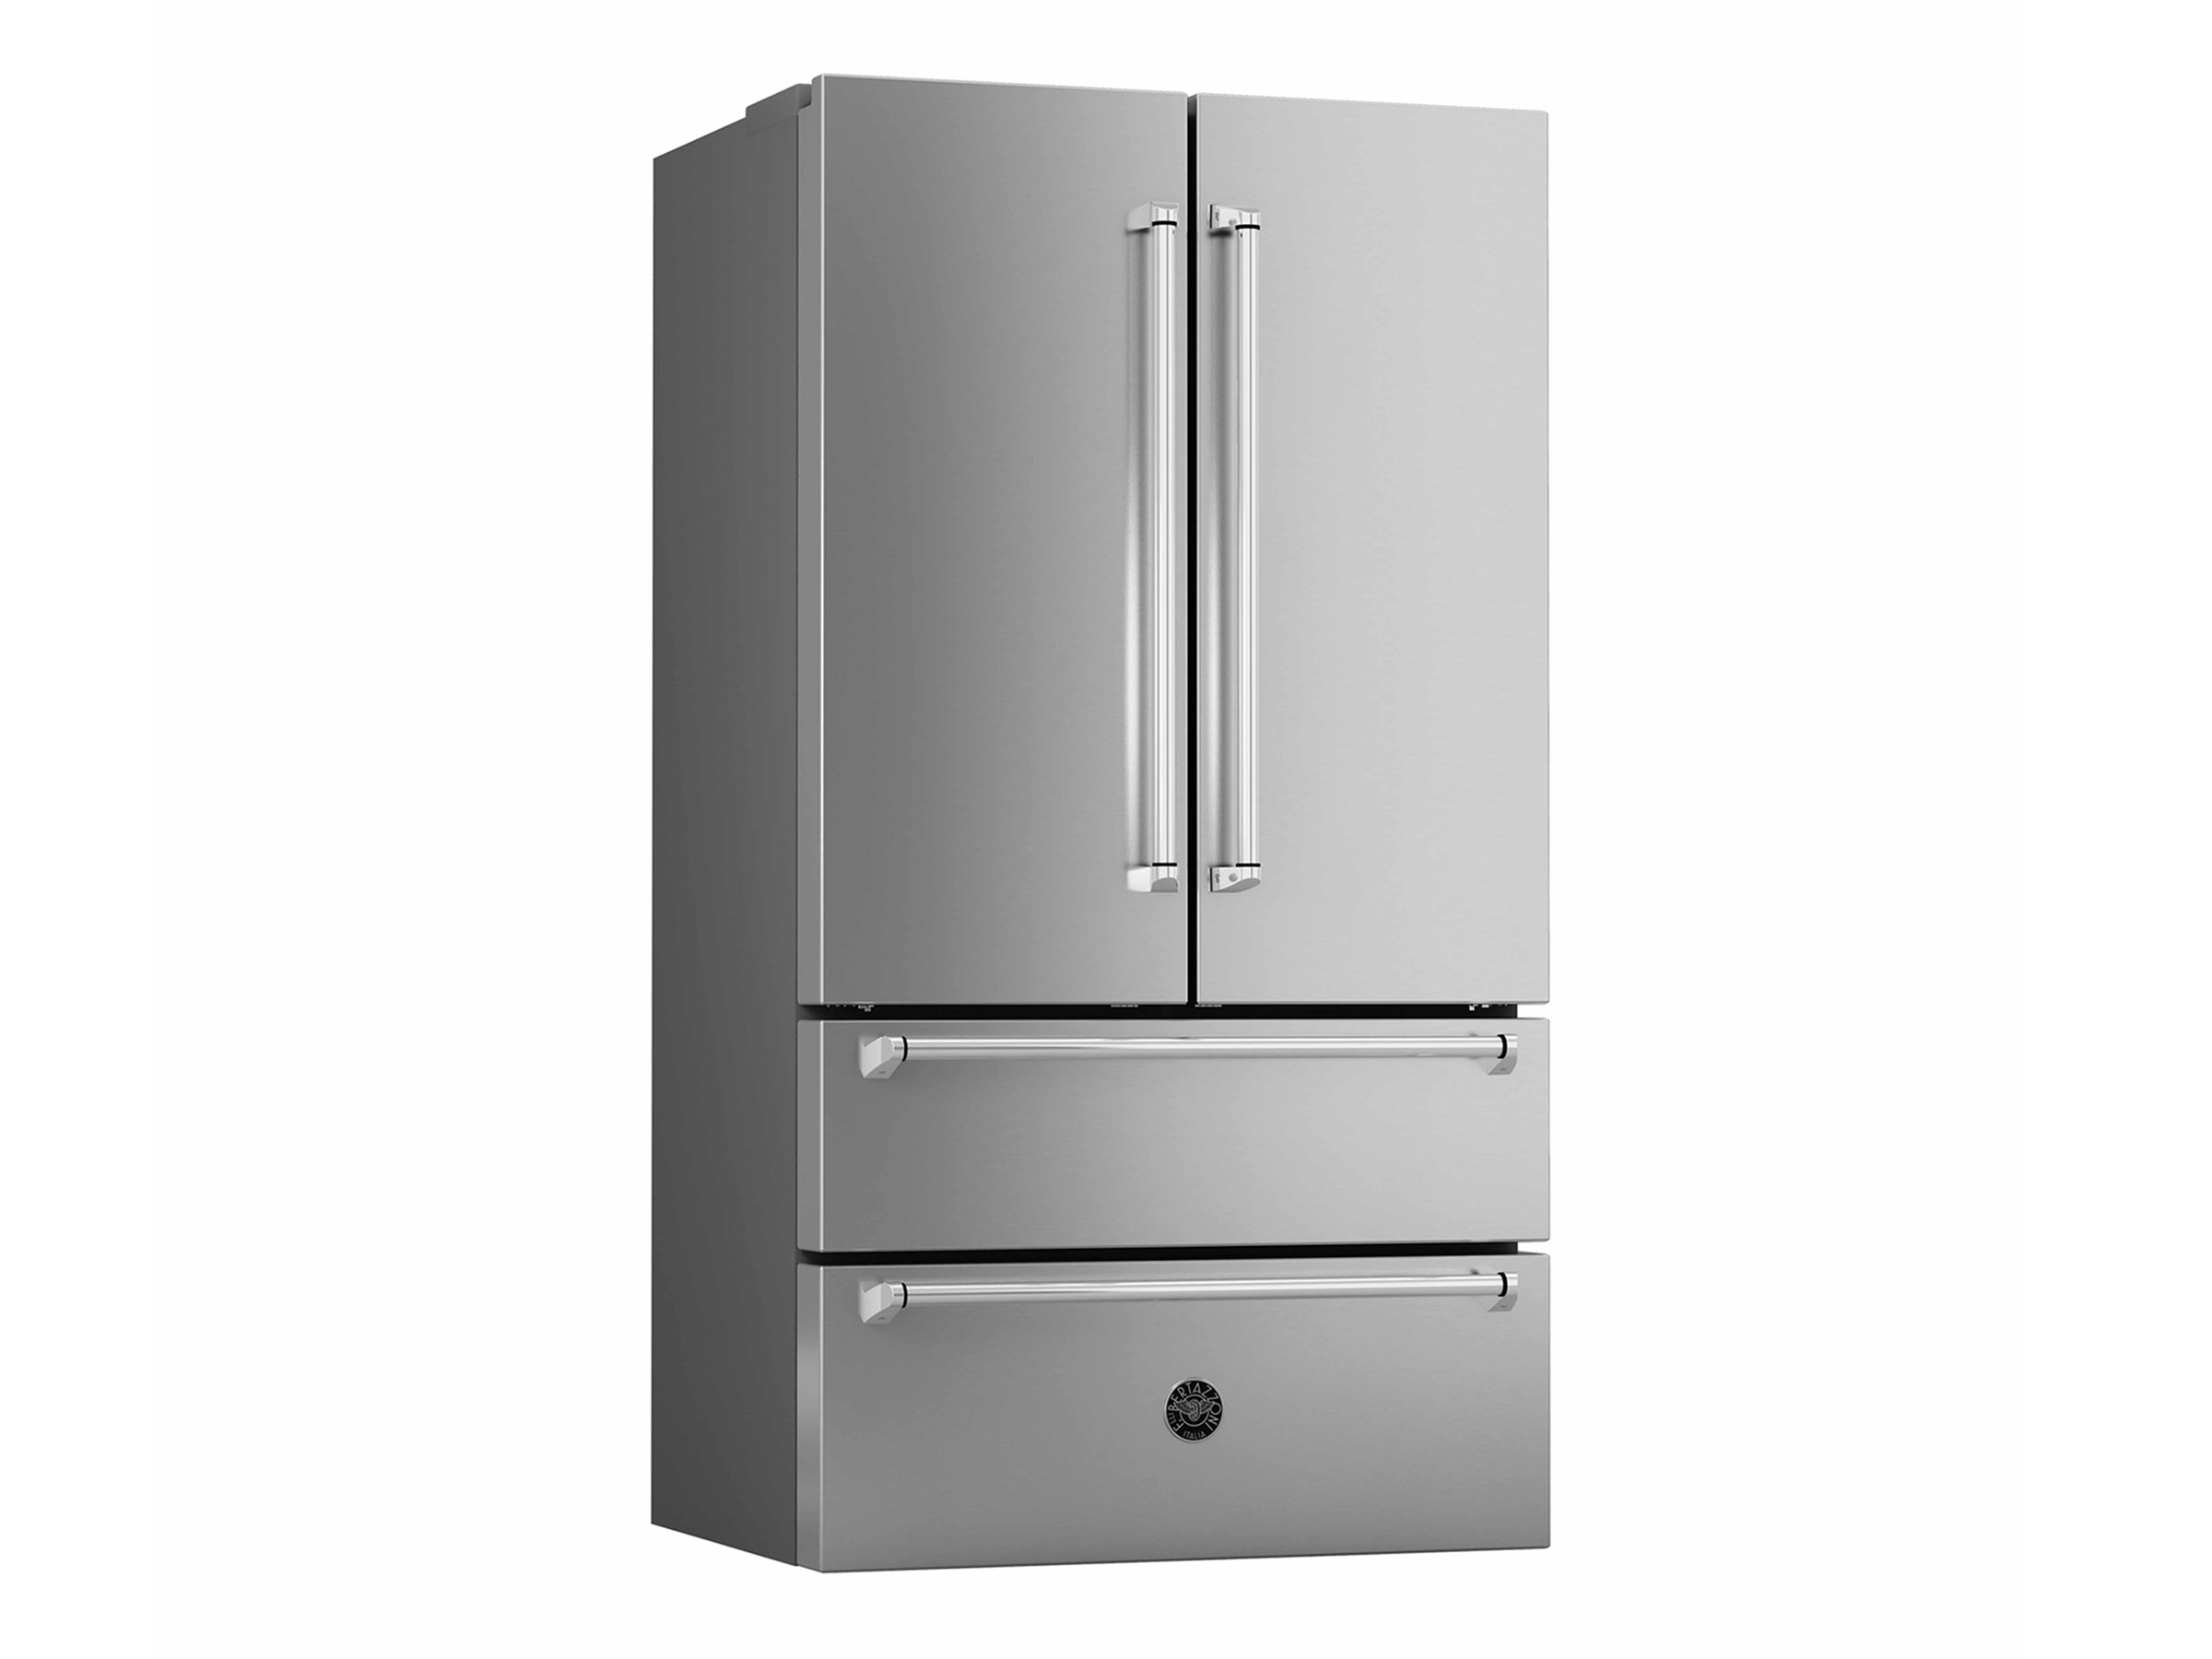 90cm Freestanding French Door | Bertazzoni - Stainless